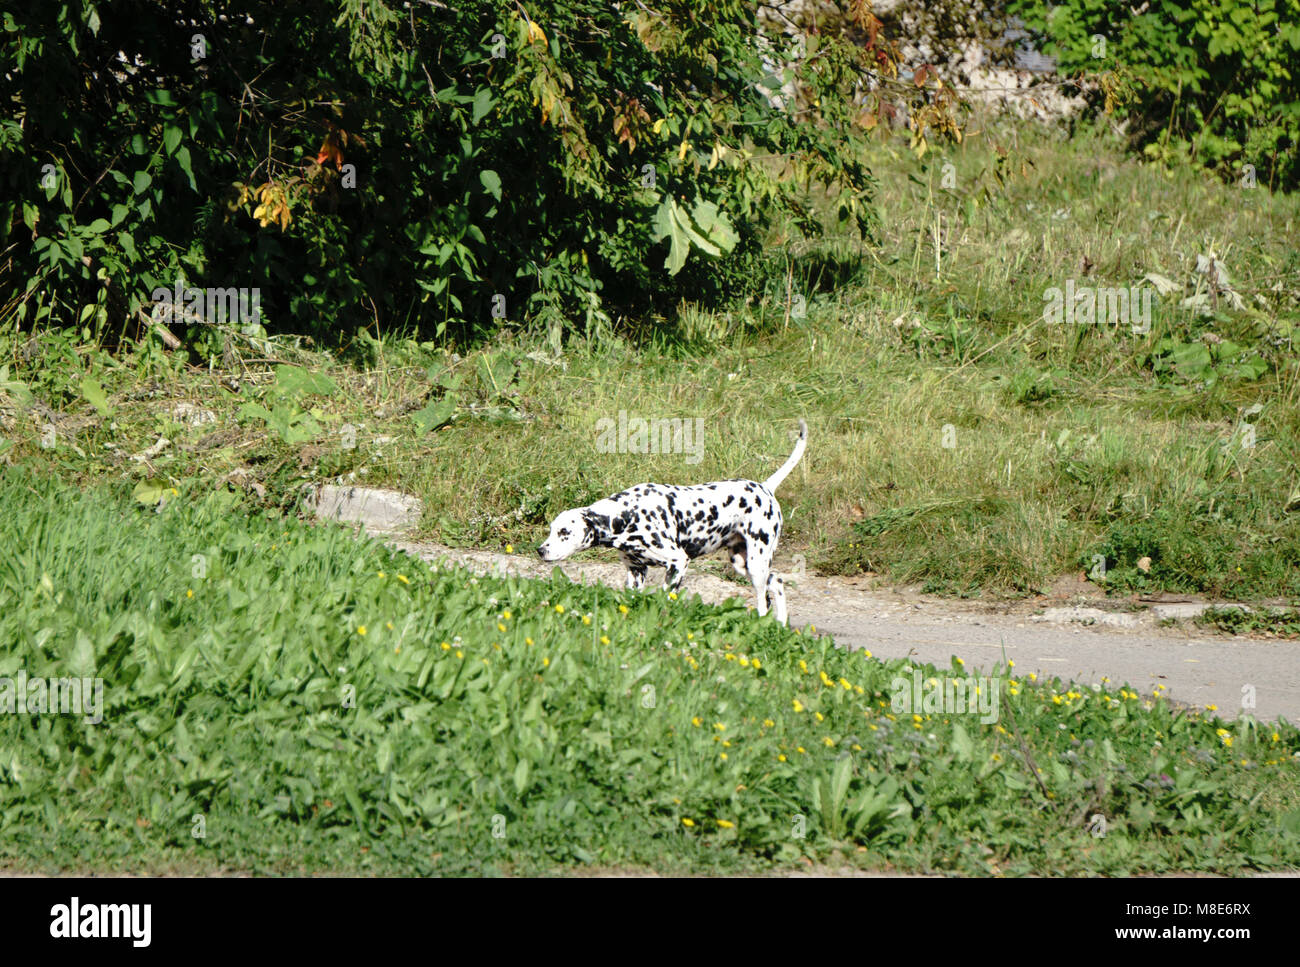 Dalmatian Puppy on a walk - Stock Image